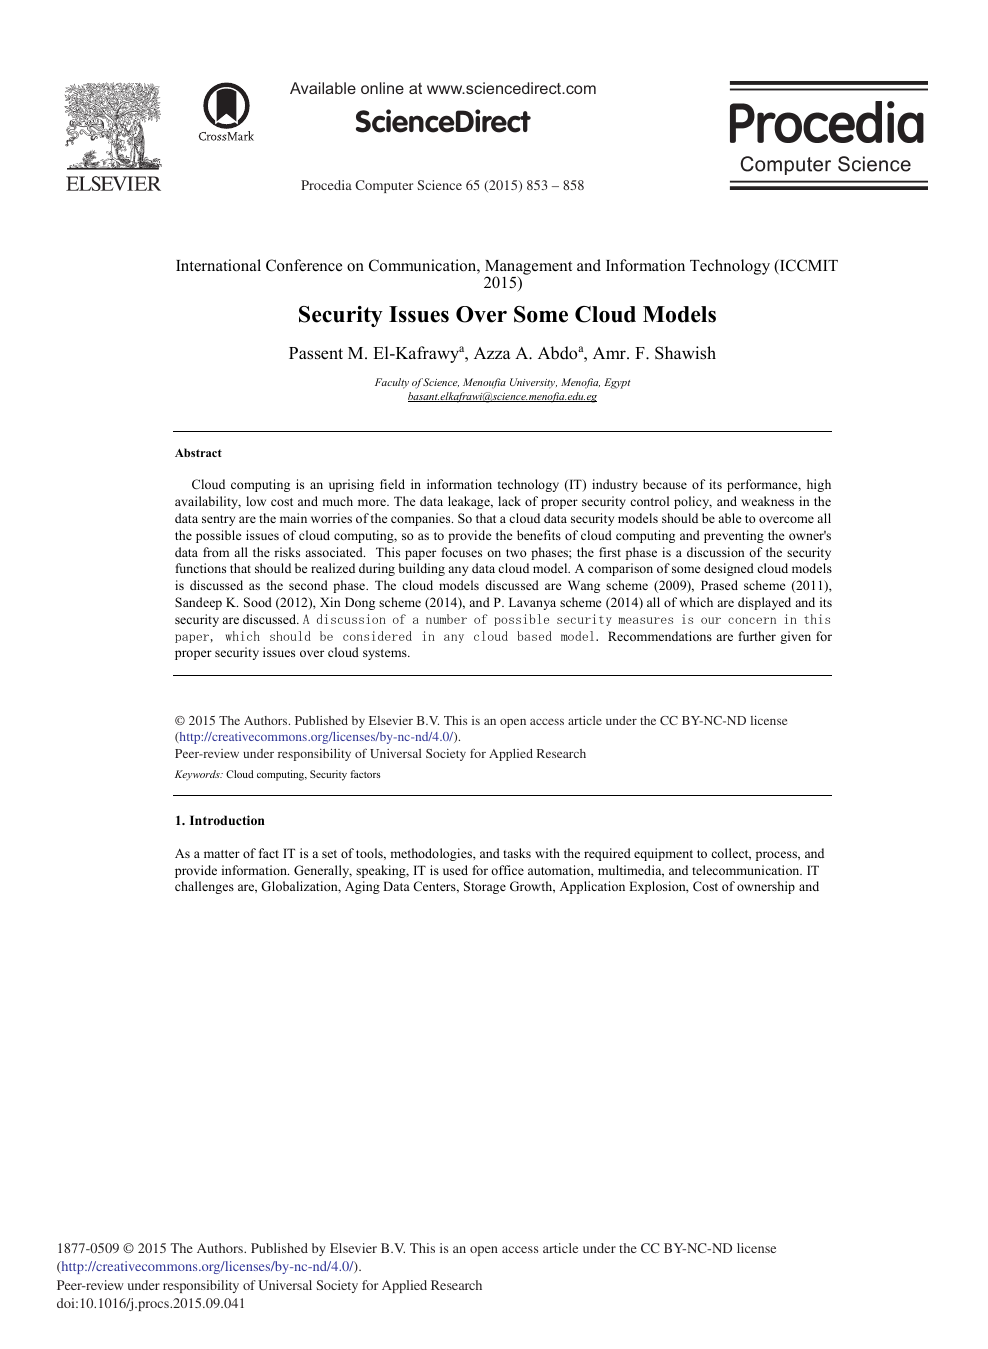 Security Issues Over Some Cloud Models – topic of research paper in  Computer and information sciences. Download scholarly article PDF and read  for free on CyberLeninka open science hub.